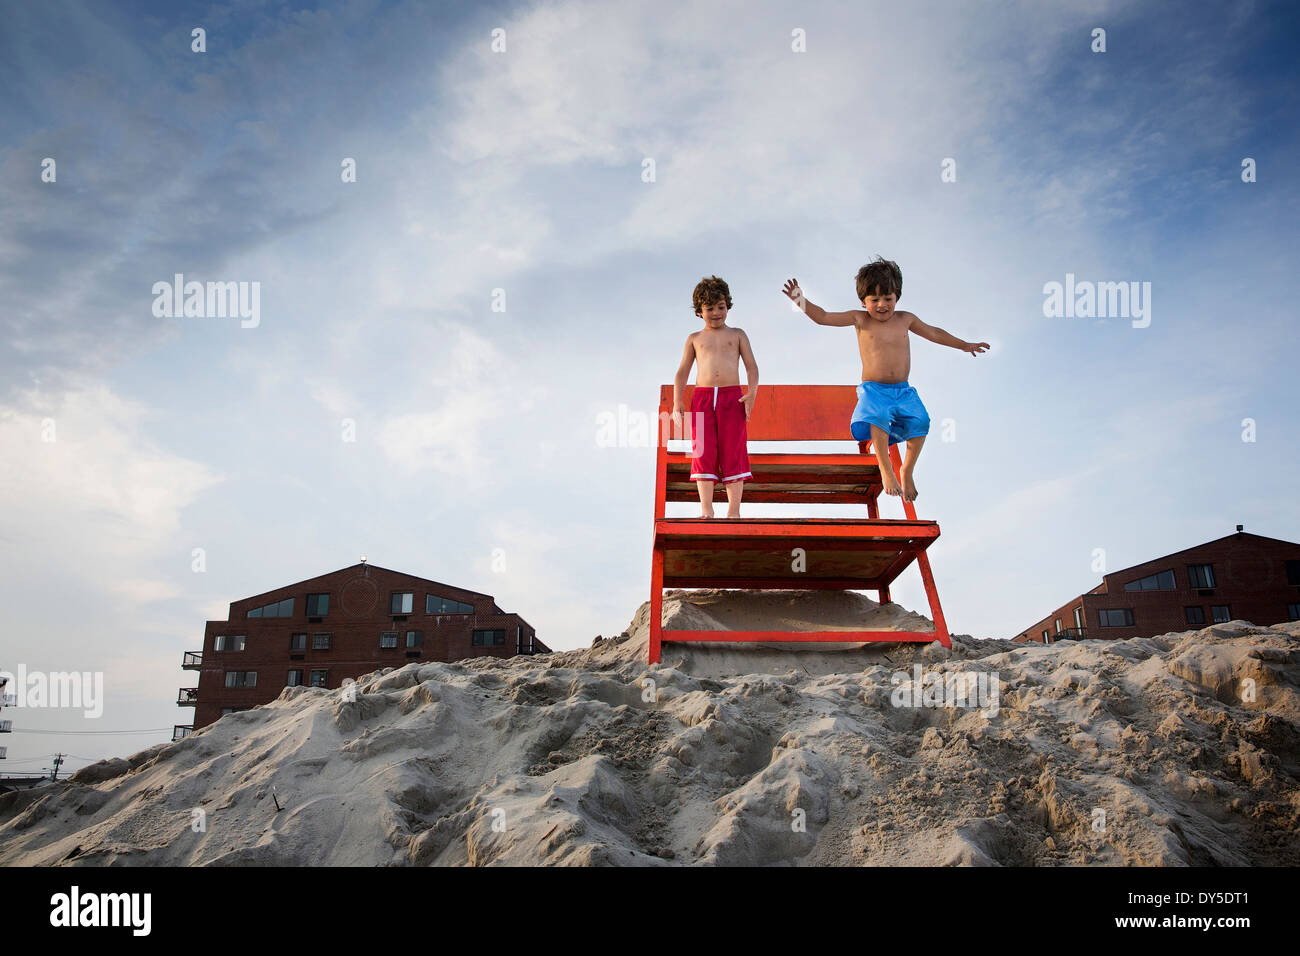 Two boys jumping off red notice board, Long Beach, New York State, USA - Stock Image